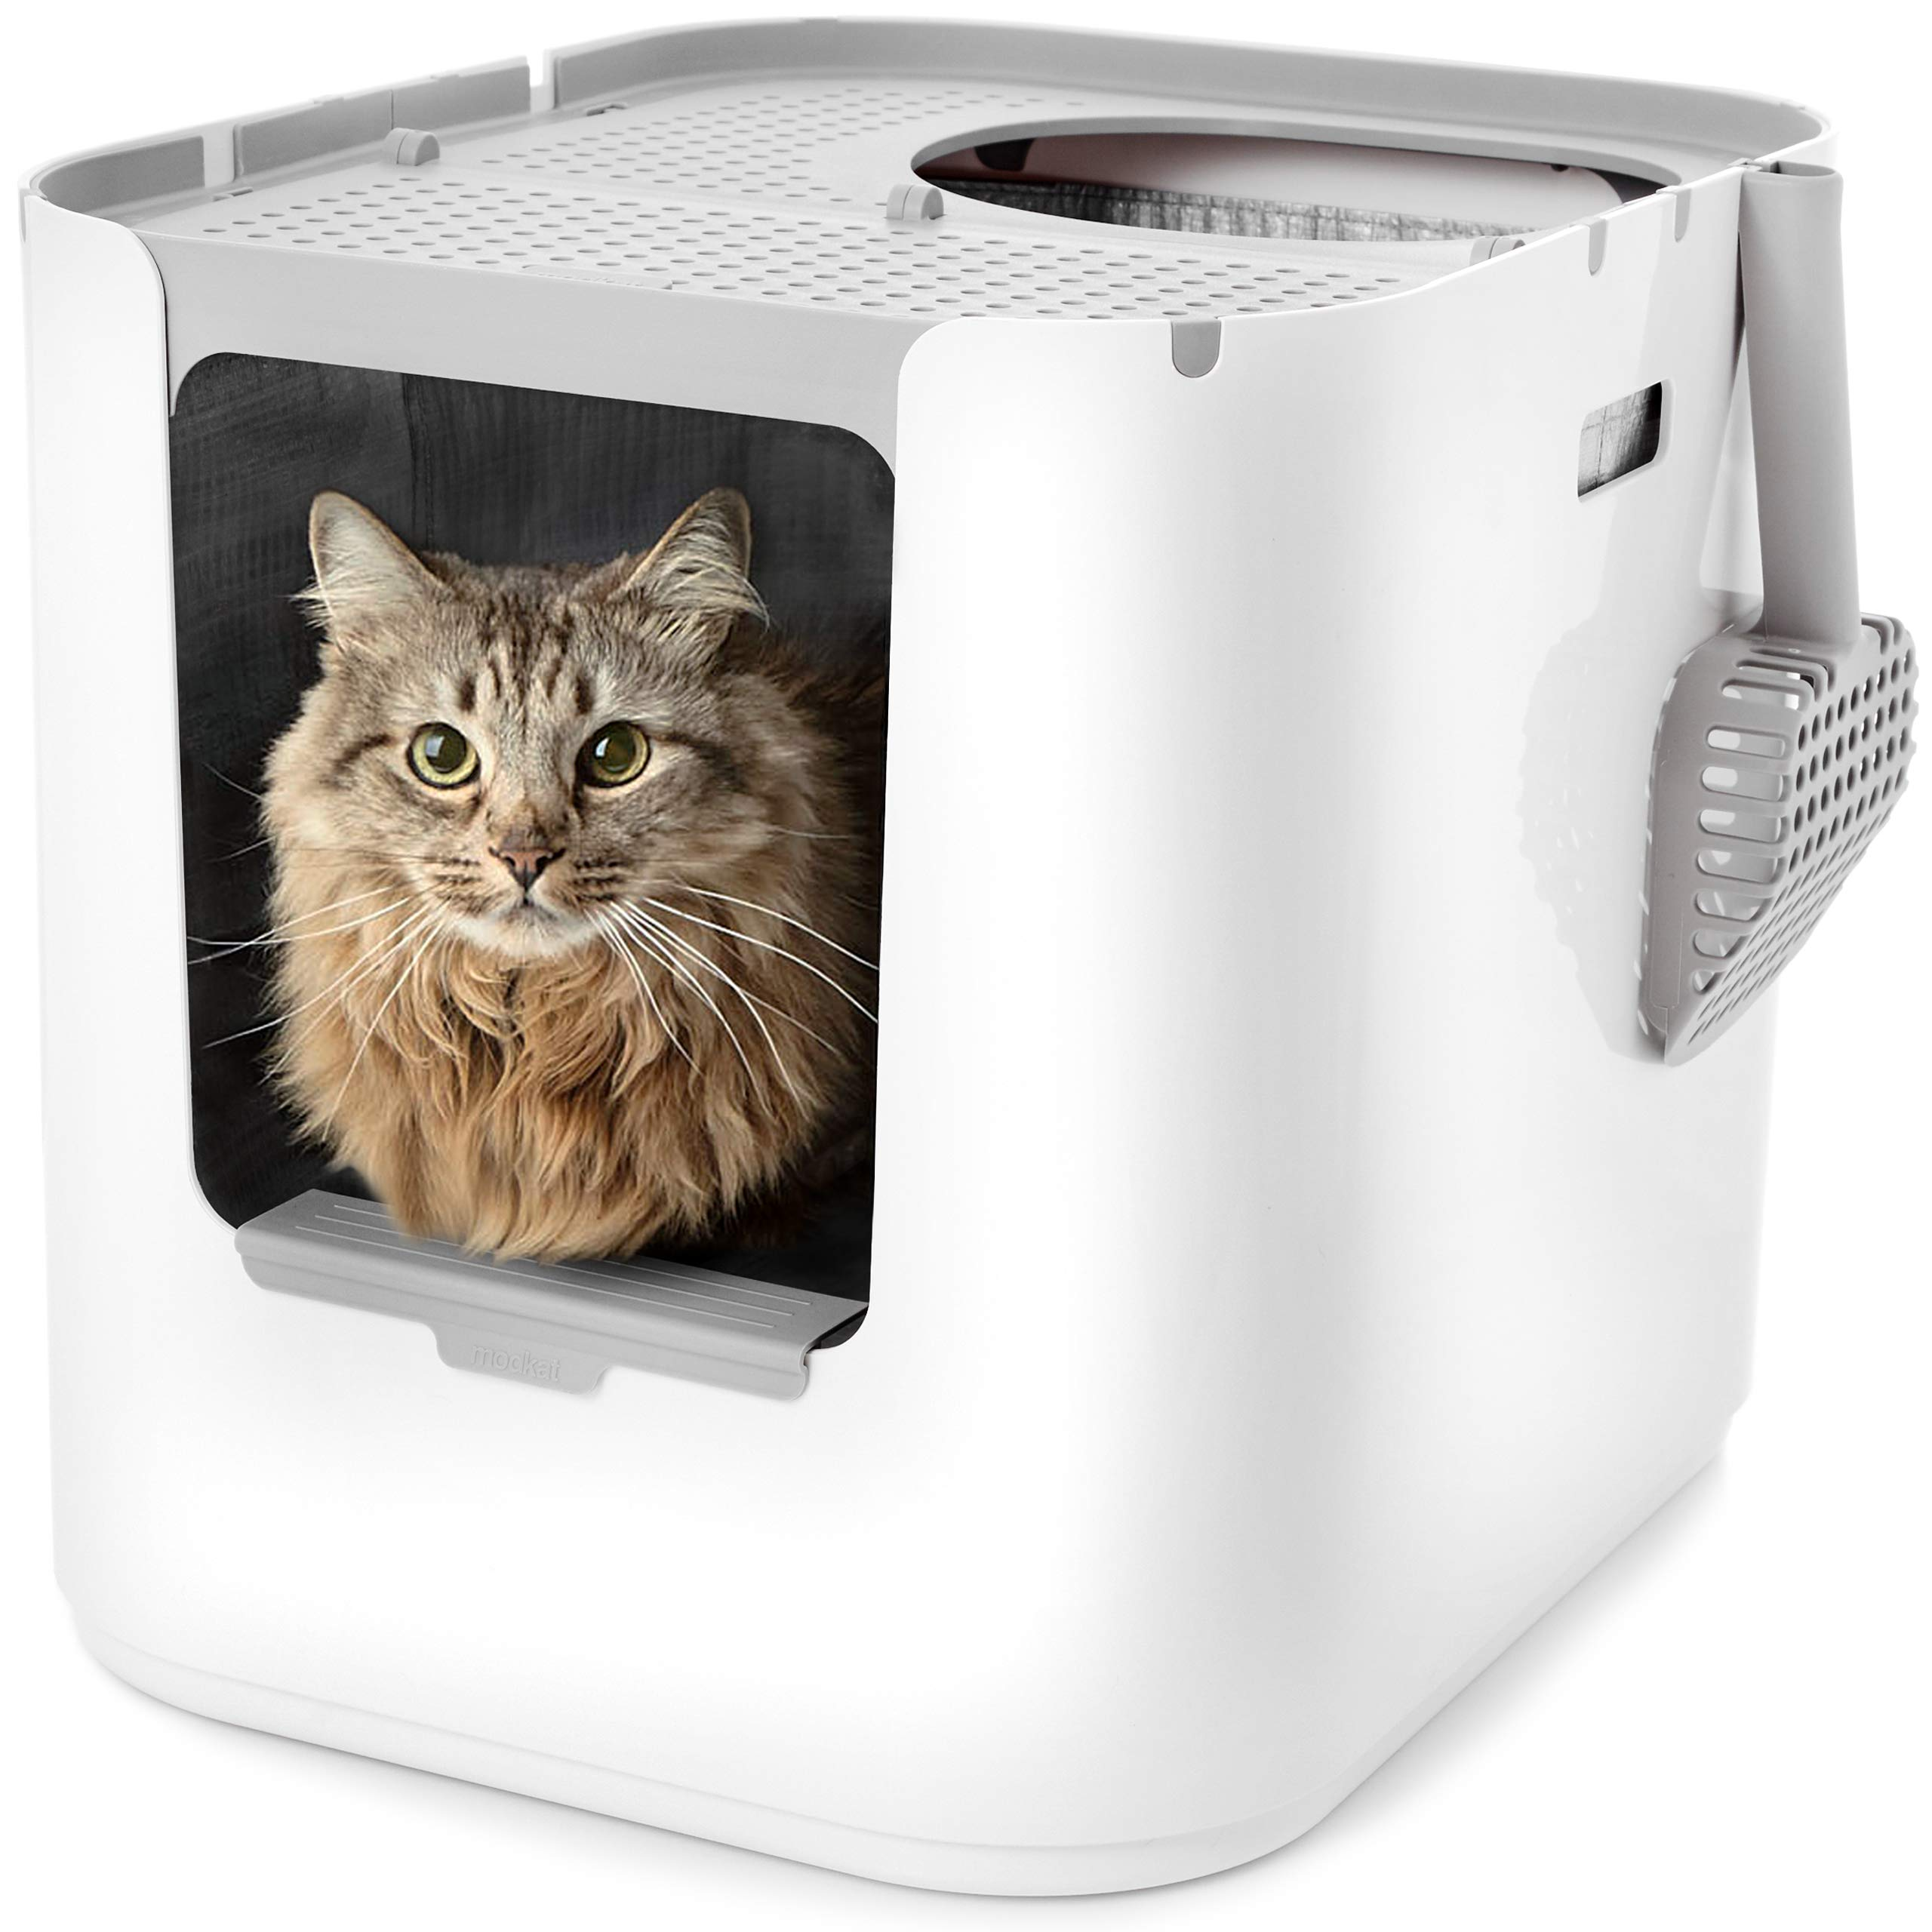 Modkat XL Litter Box, Top-Entry or Front-Entry Configurable by Modkat